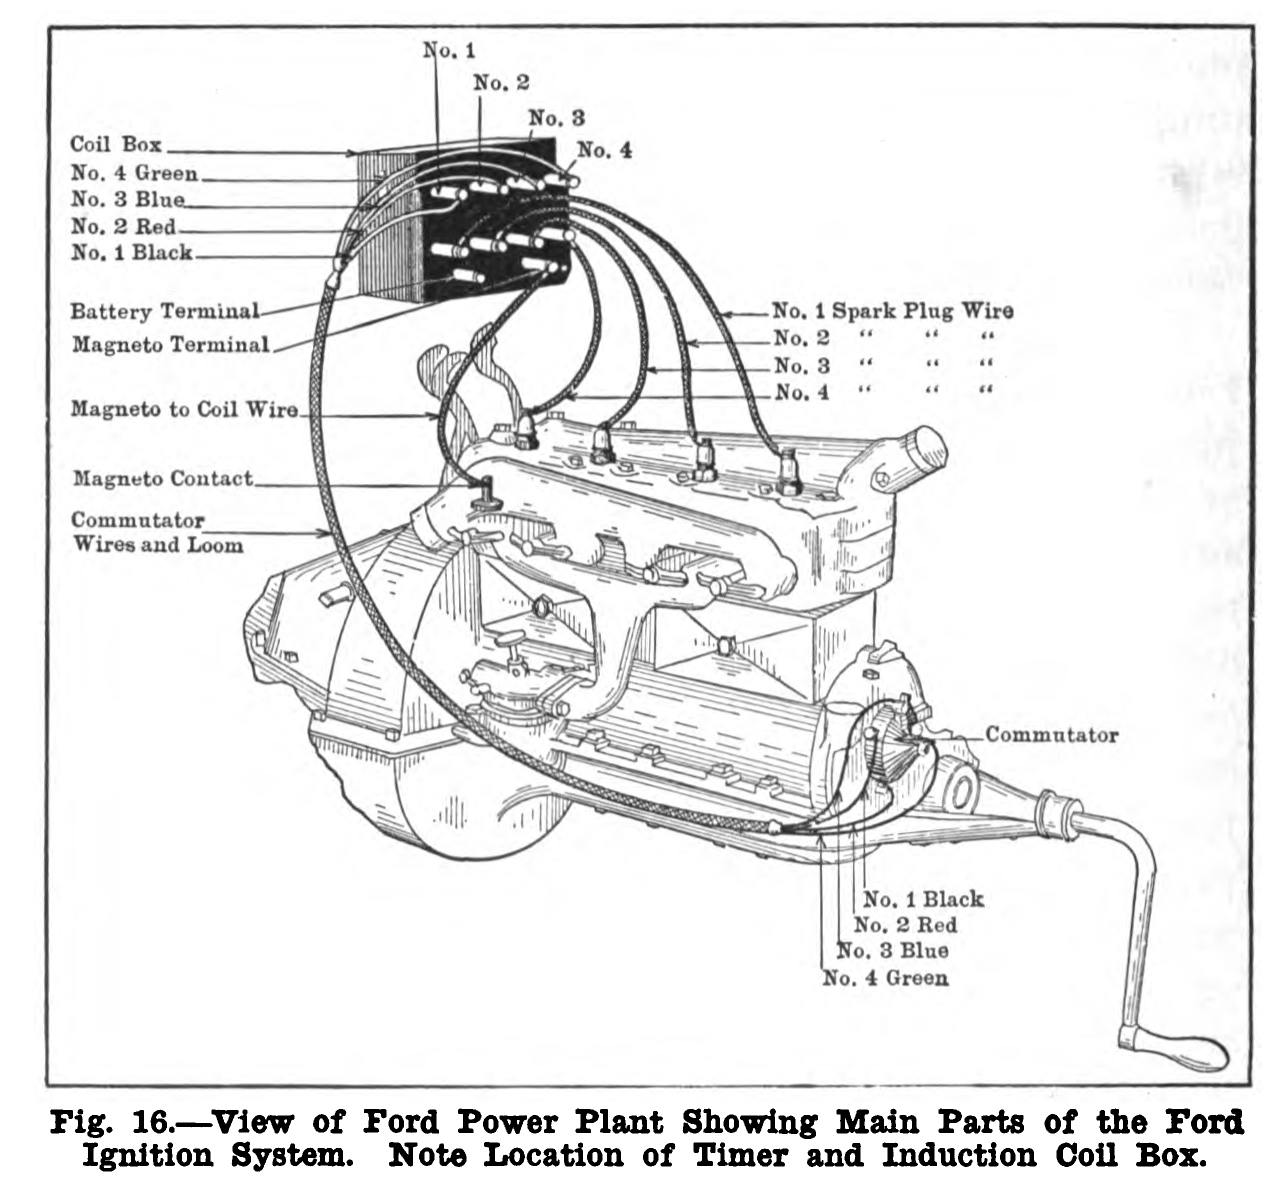 hight resolution of 1917 model t ford car figure 16